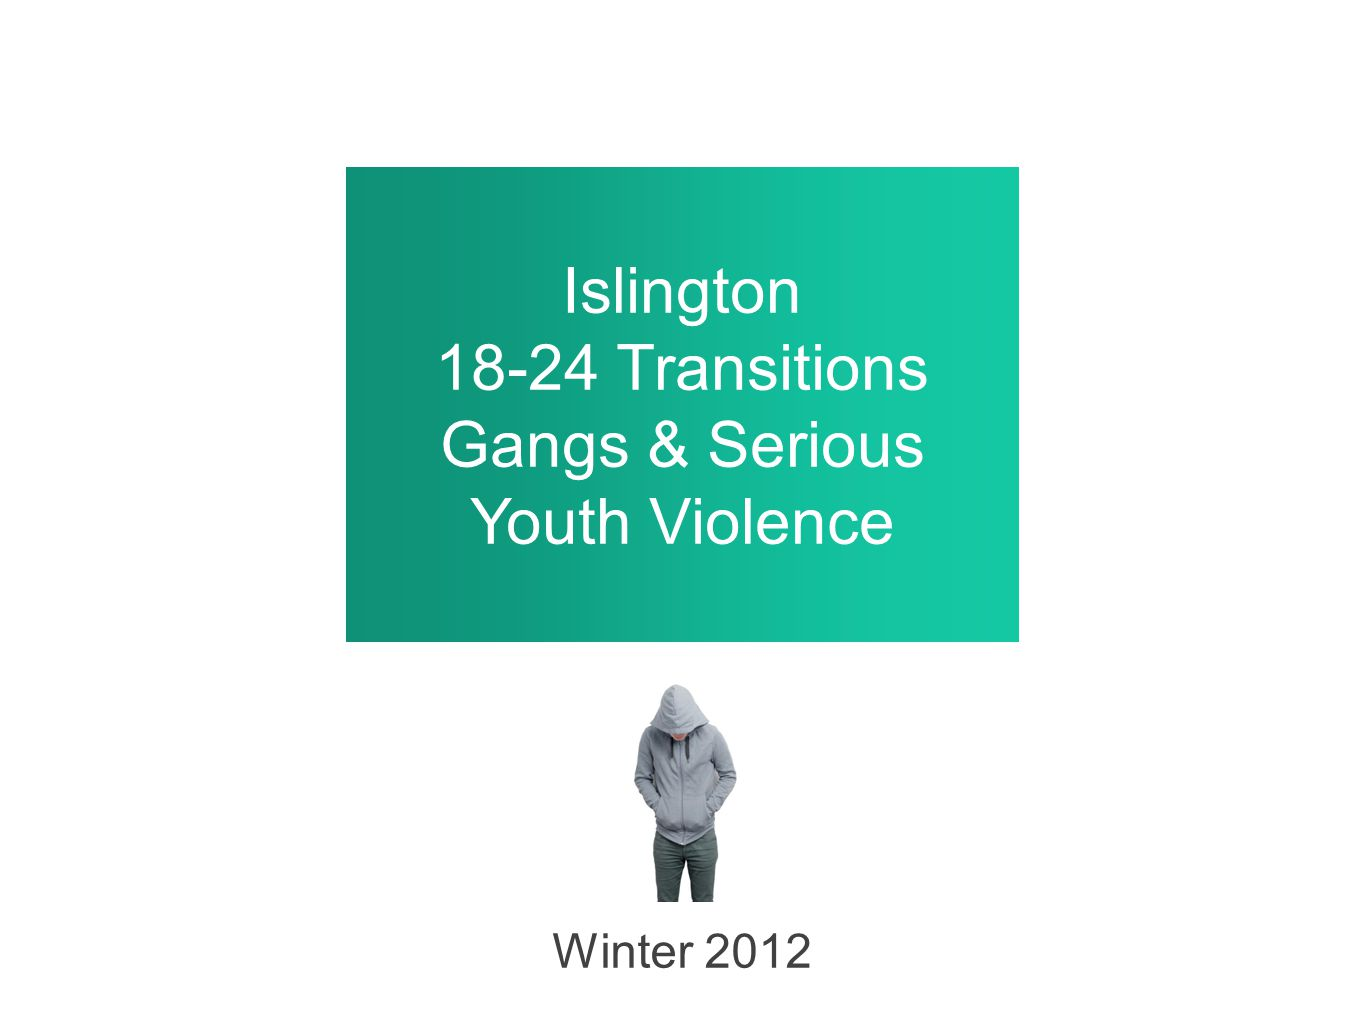 Islington 18-24 Transitions Gangs & Serious Youth Violence Winter 2012